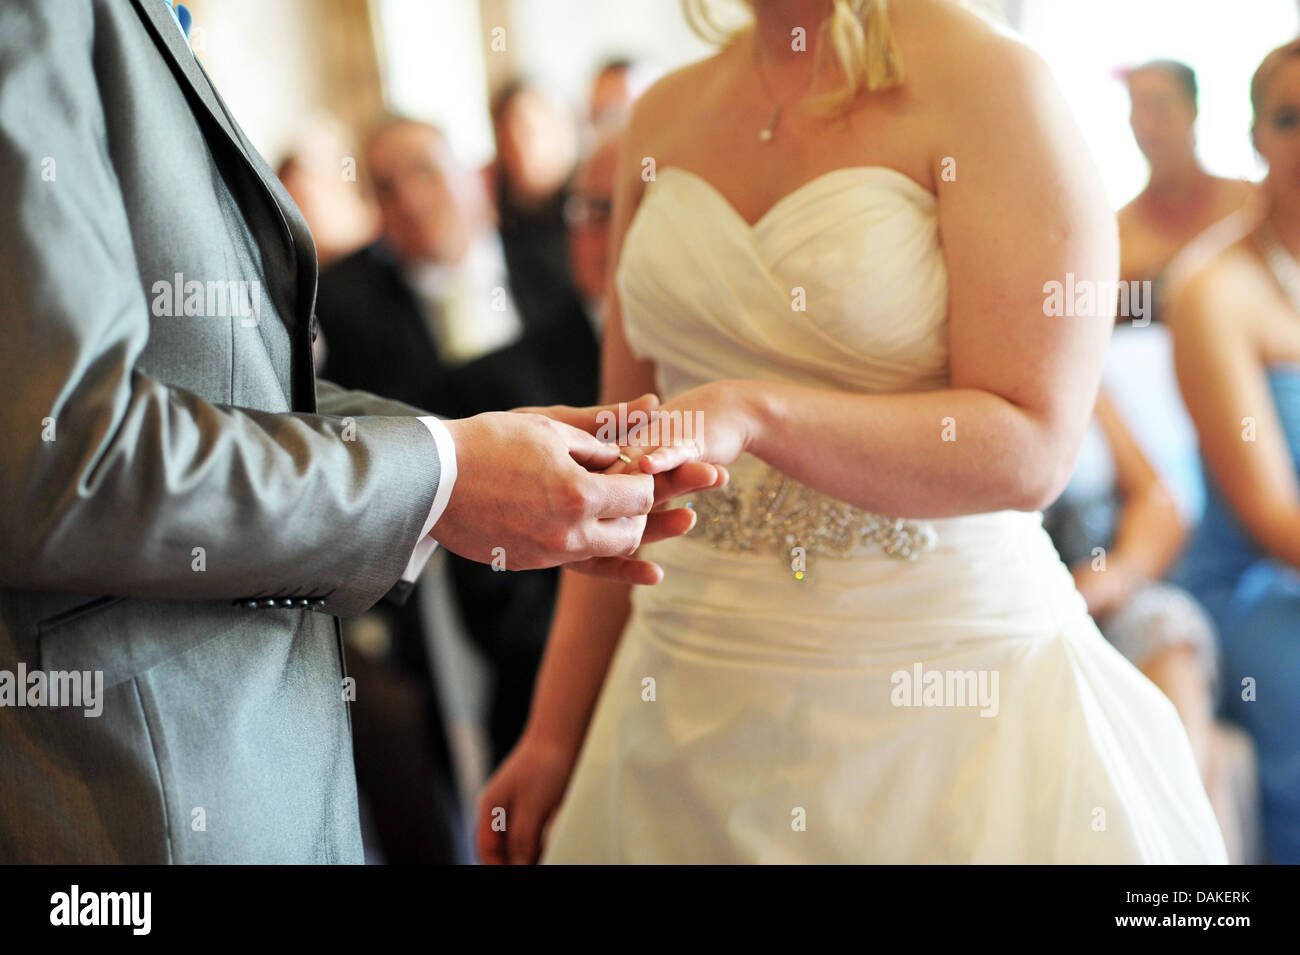 Bride and groom exchange wedding rings during the wedding ceremony. Stock Photo